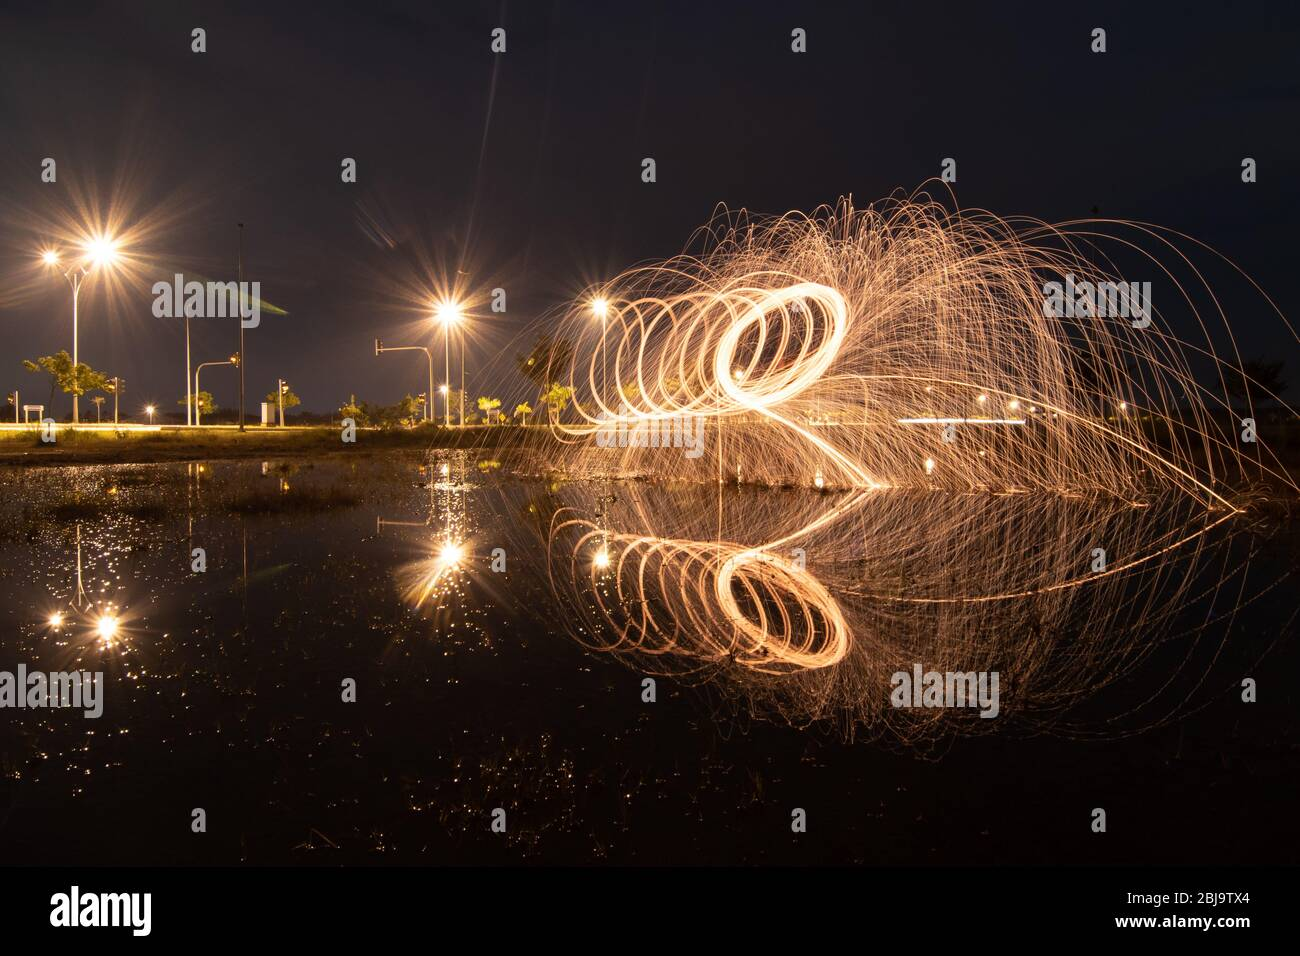 Fire steel wool with reflection. Stock Photo